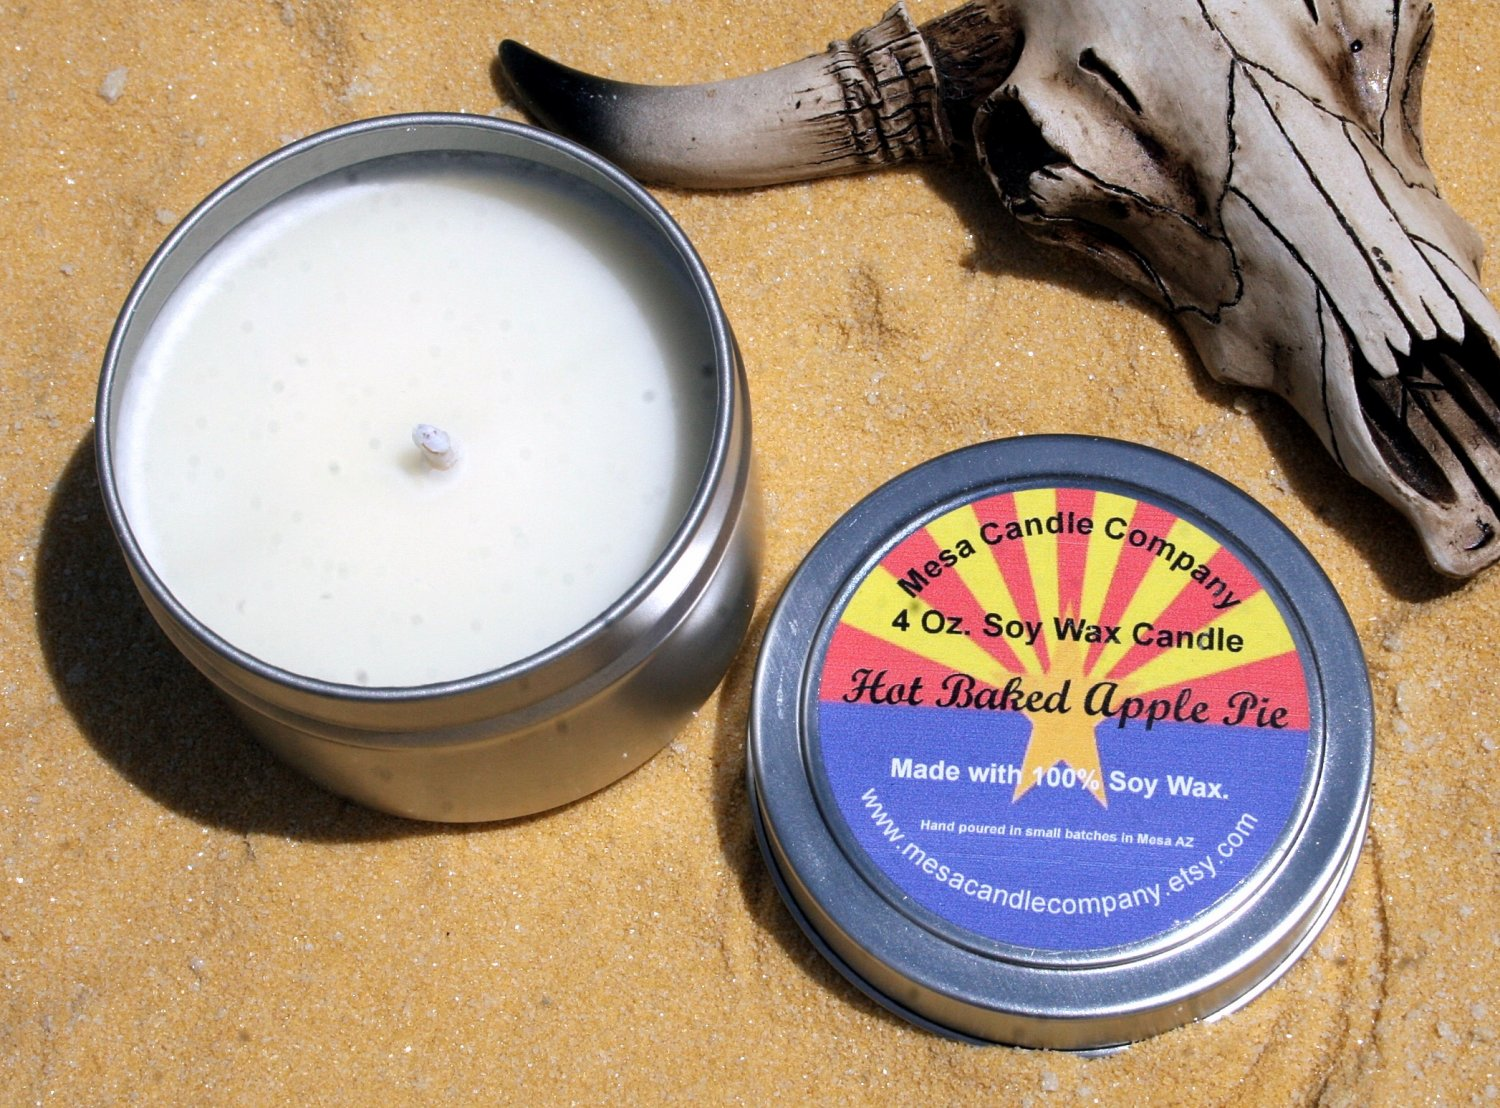 Hot Baked Apple Pie Scented Soy Candle 4 Oz.